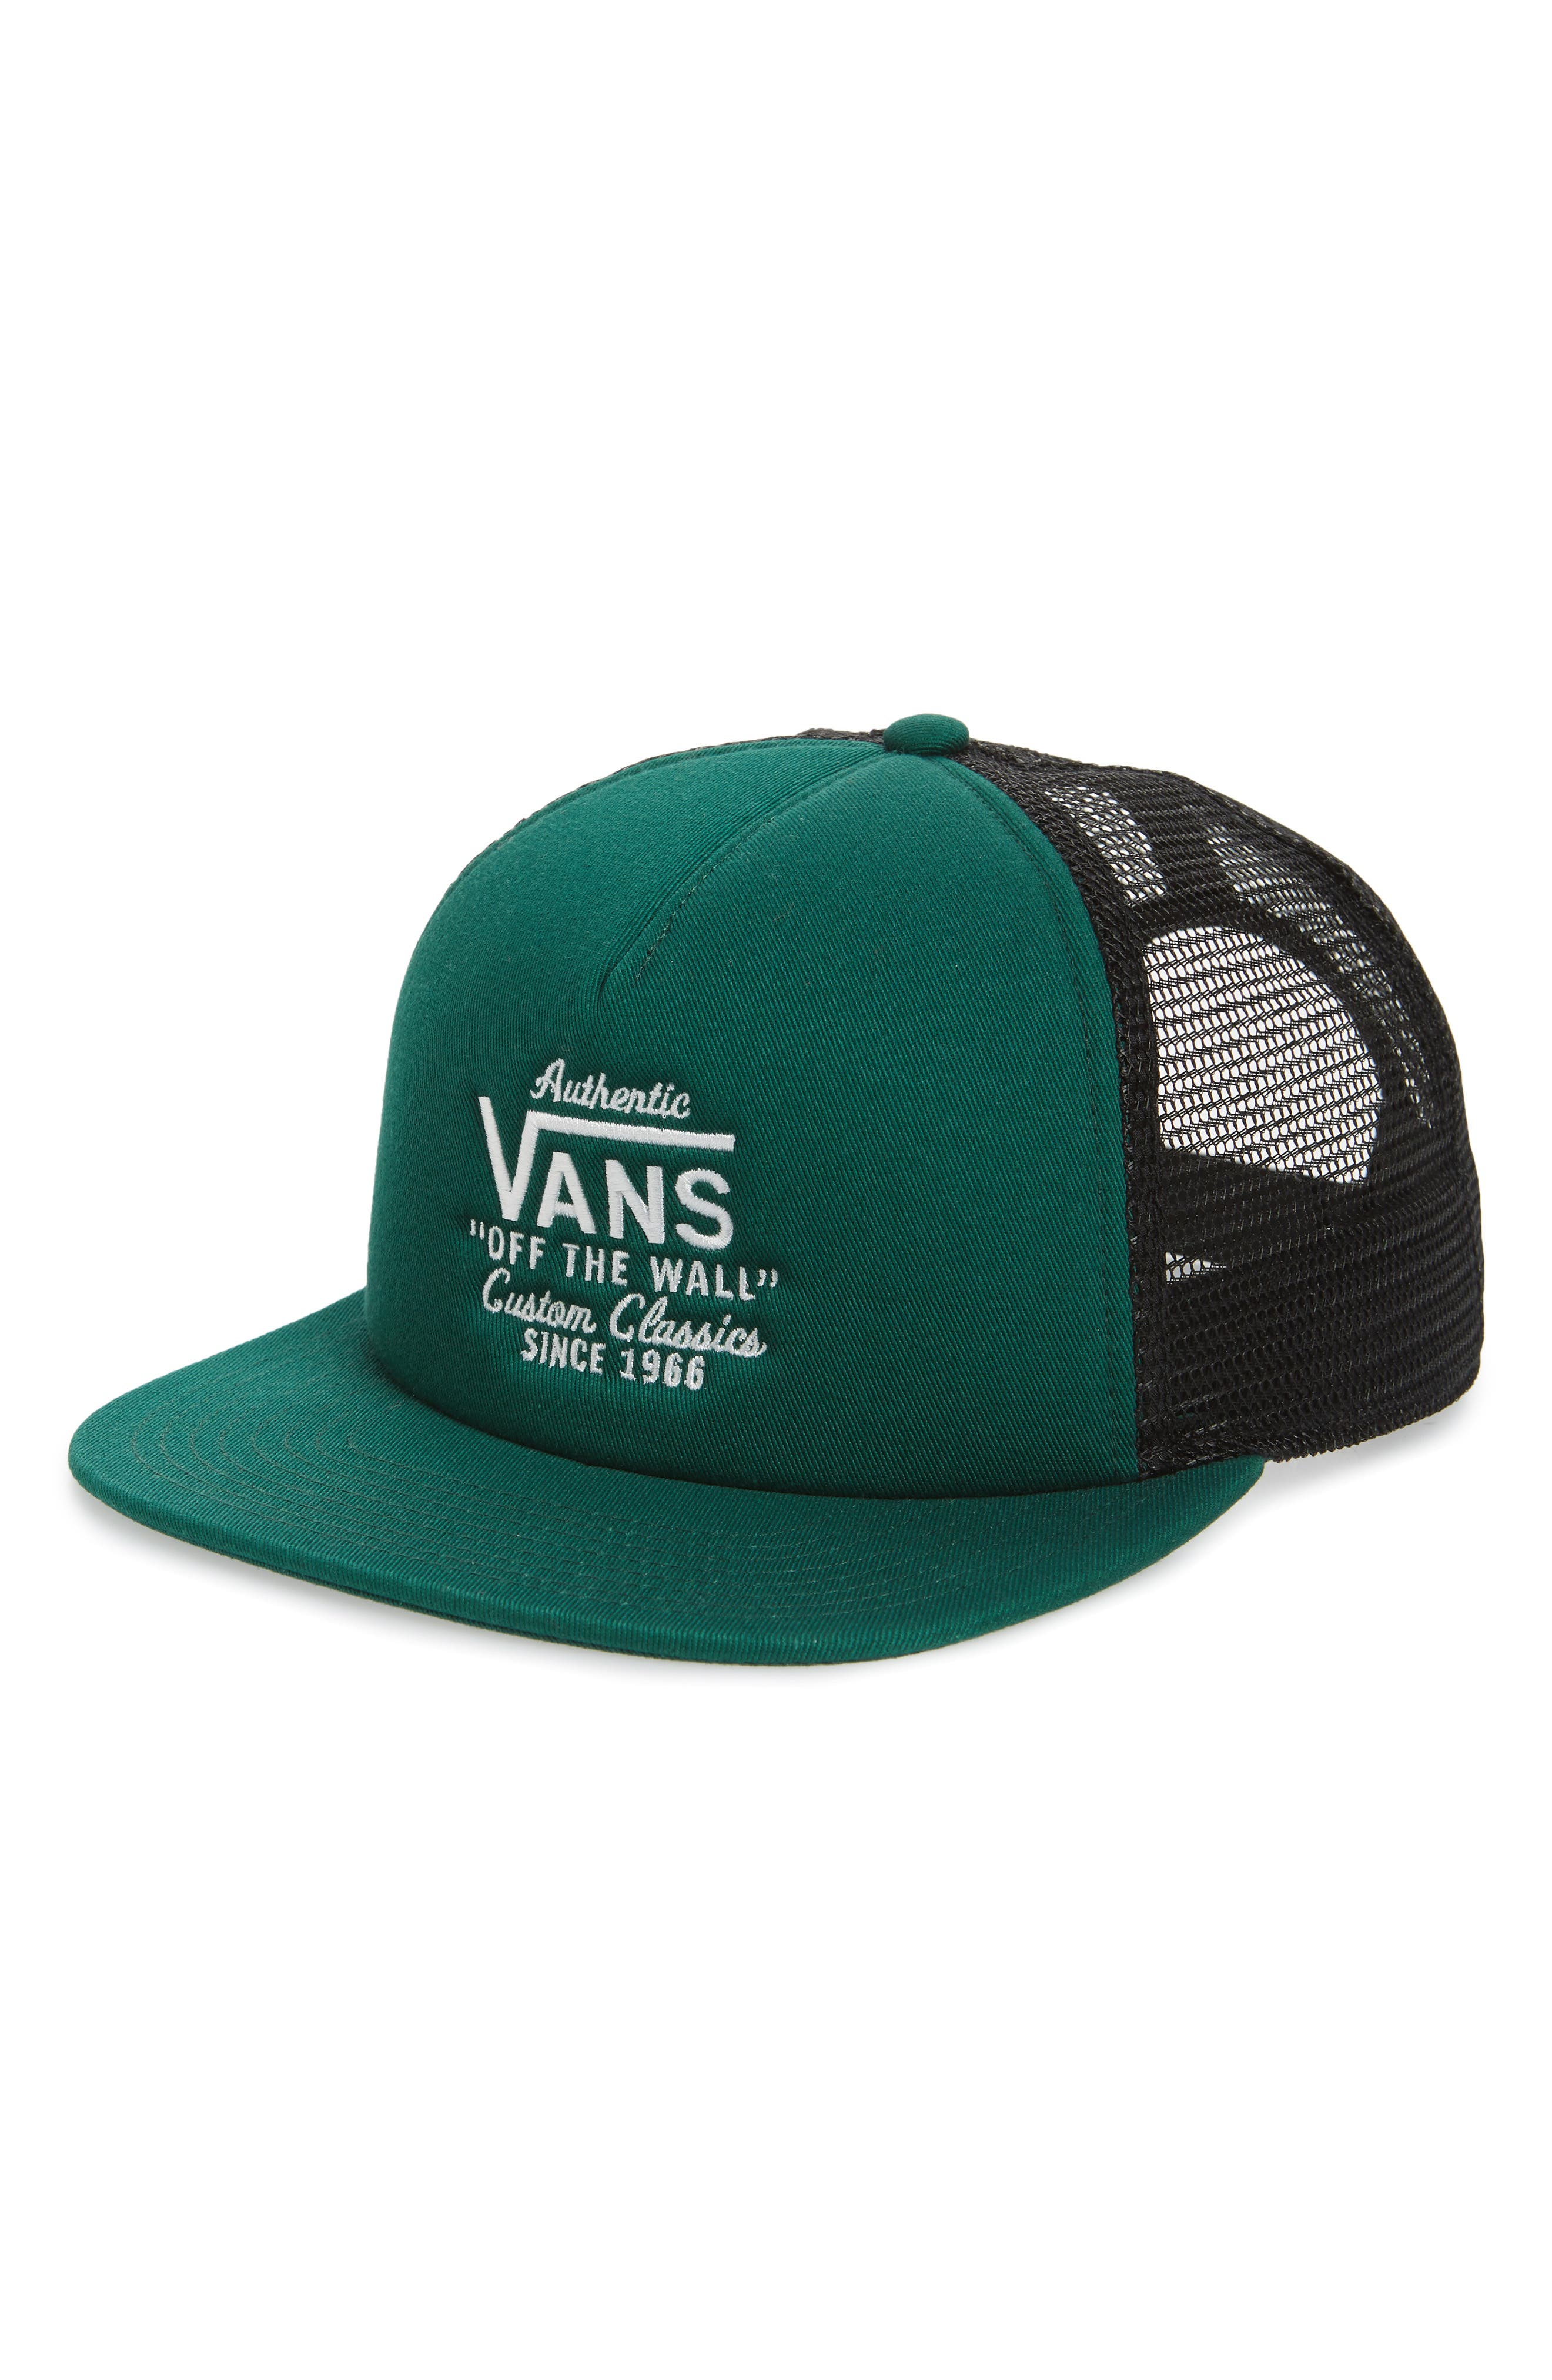 VANS,                             Galer Embroidered Trucker Hat,                             Main thumbnail 1, color,                             EVERGREEN